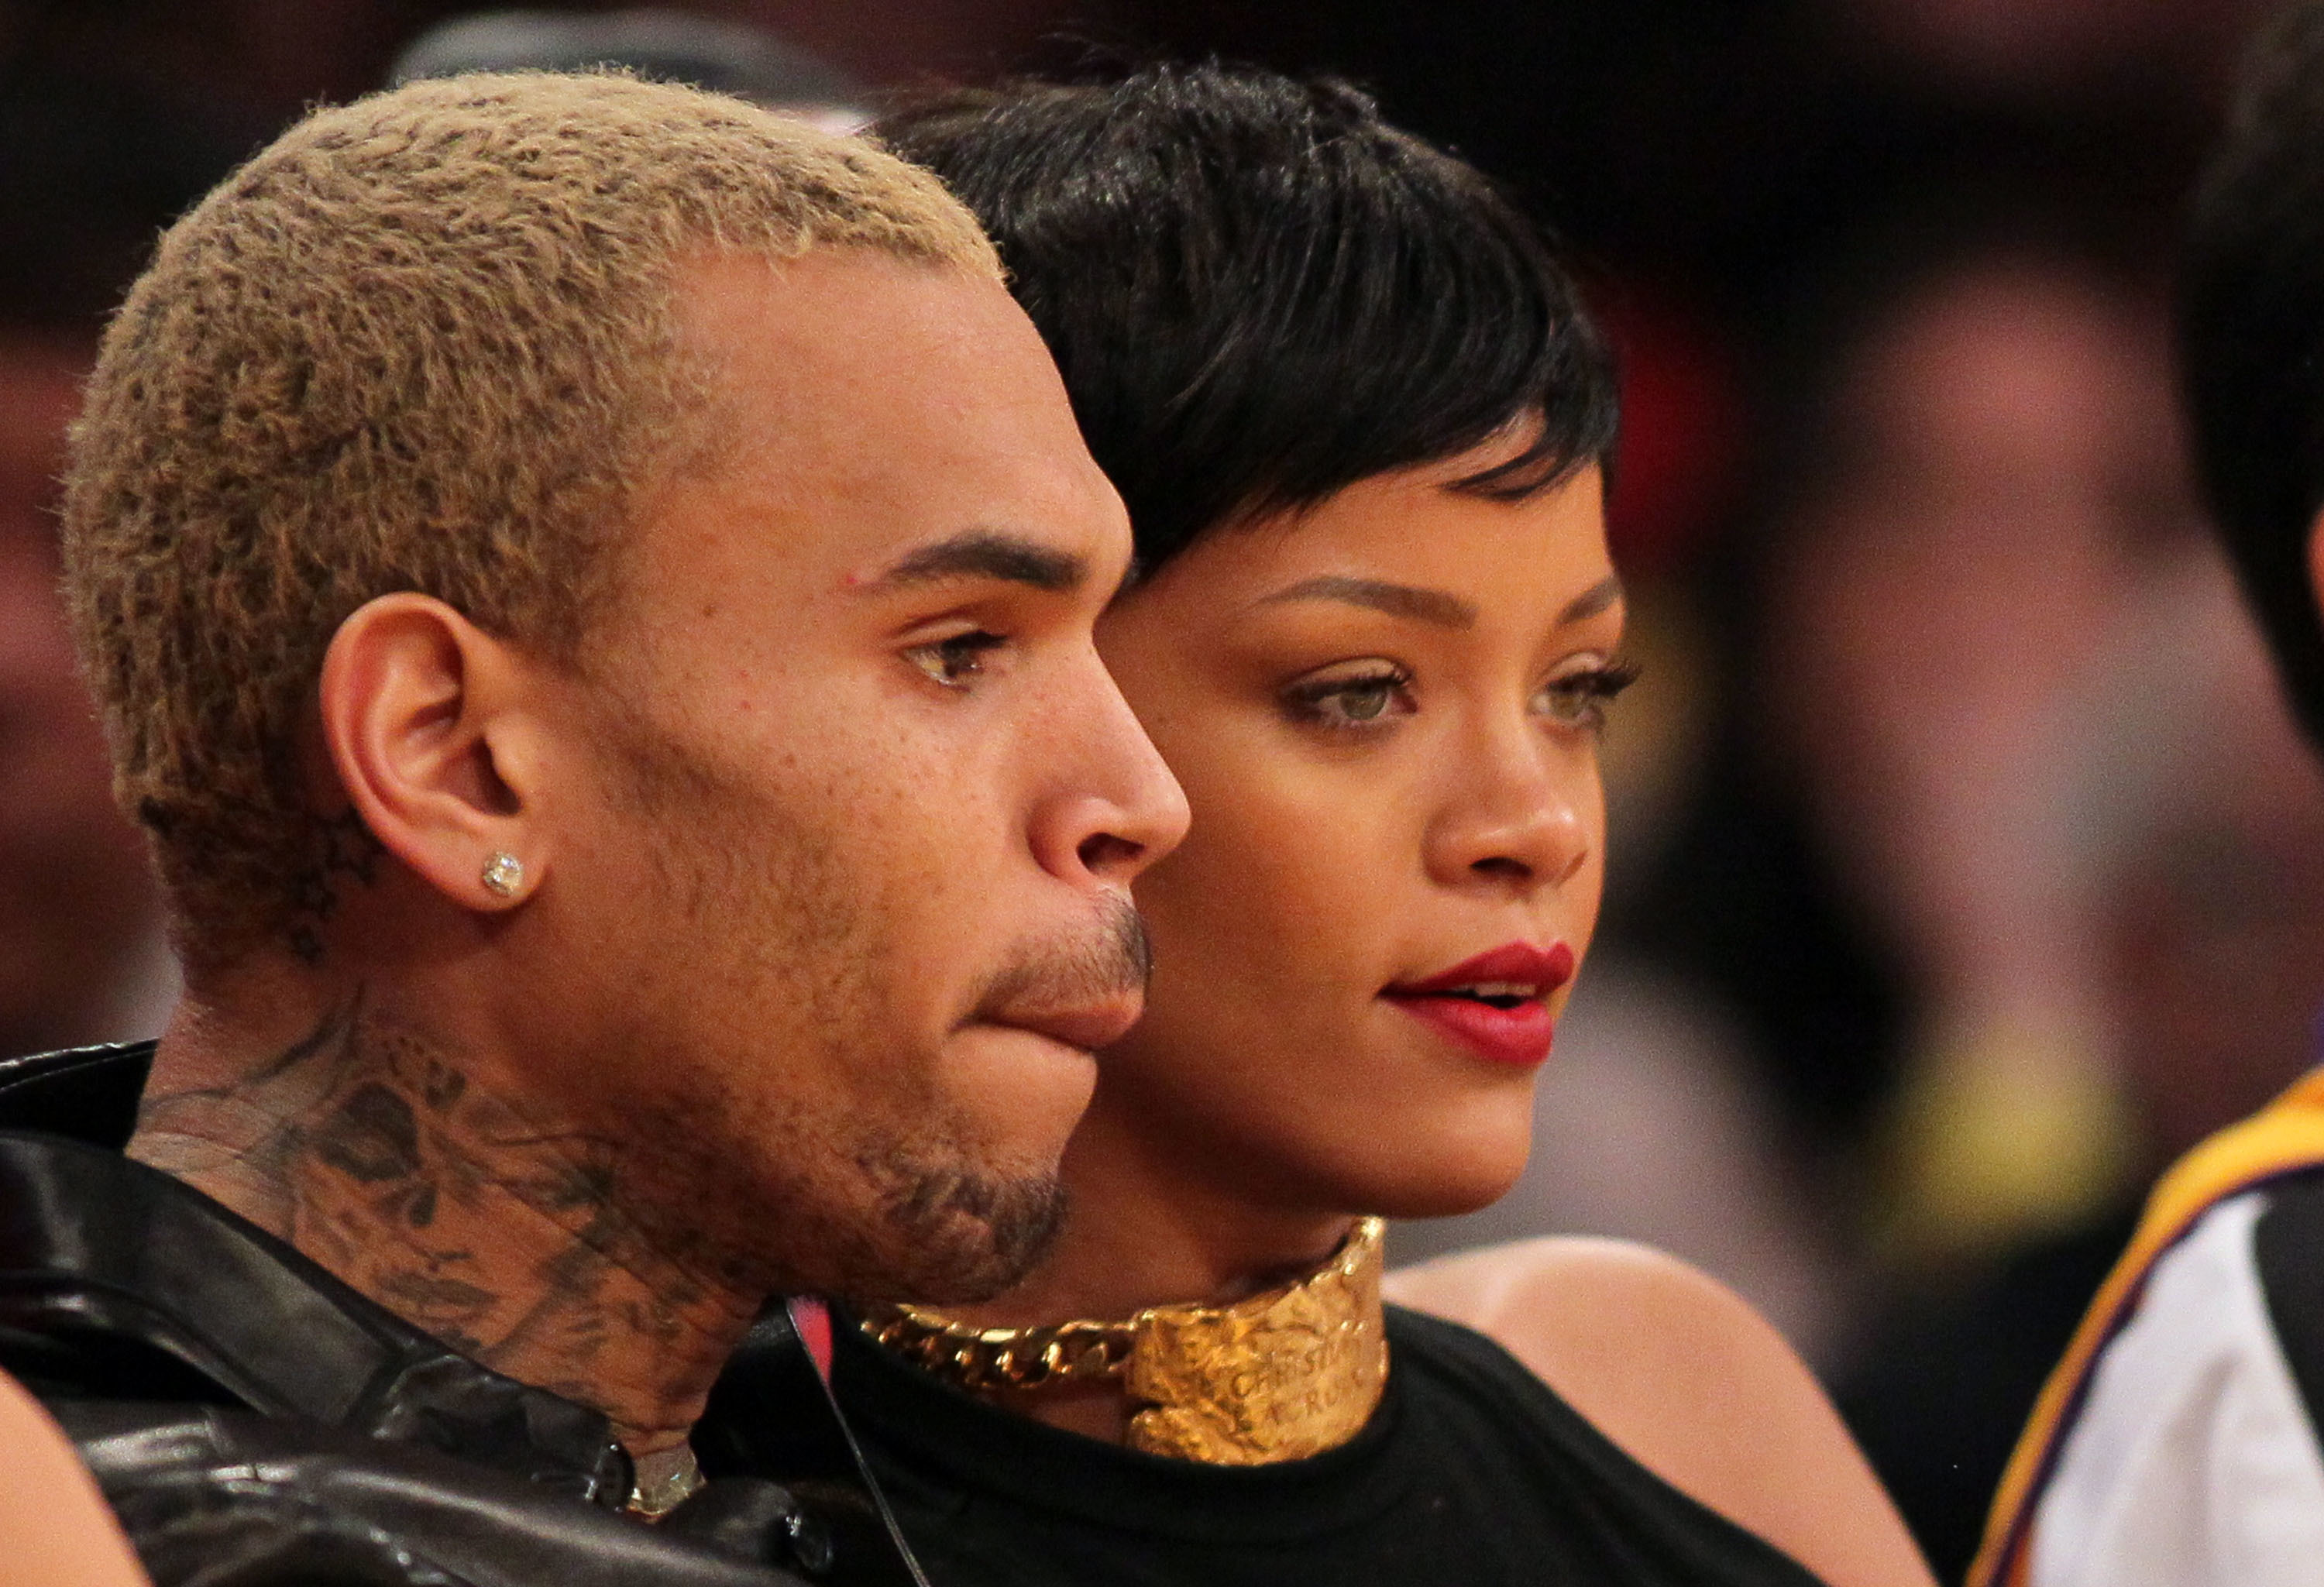 Chris Brown and Rihanna attend an NBA game between the New York Knicks and the Los Angeles Lakers at the Staples Center in Los Angeles on Dec. 25, 2012.